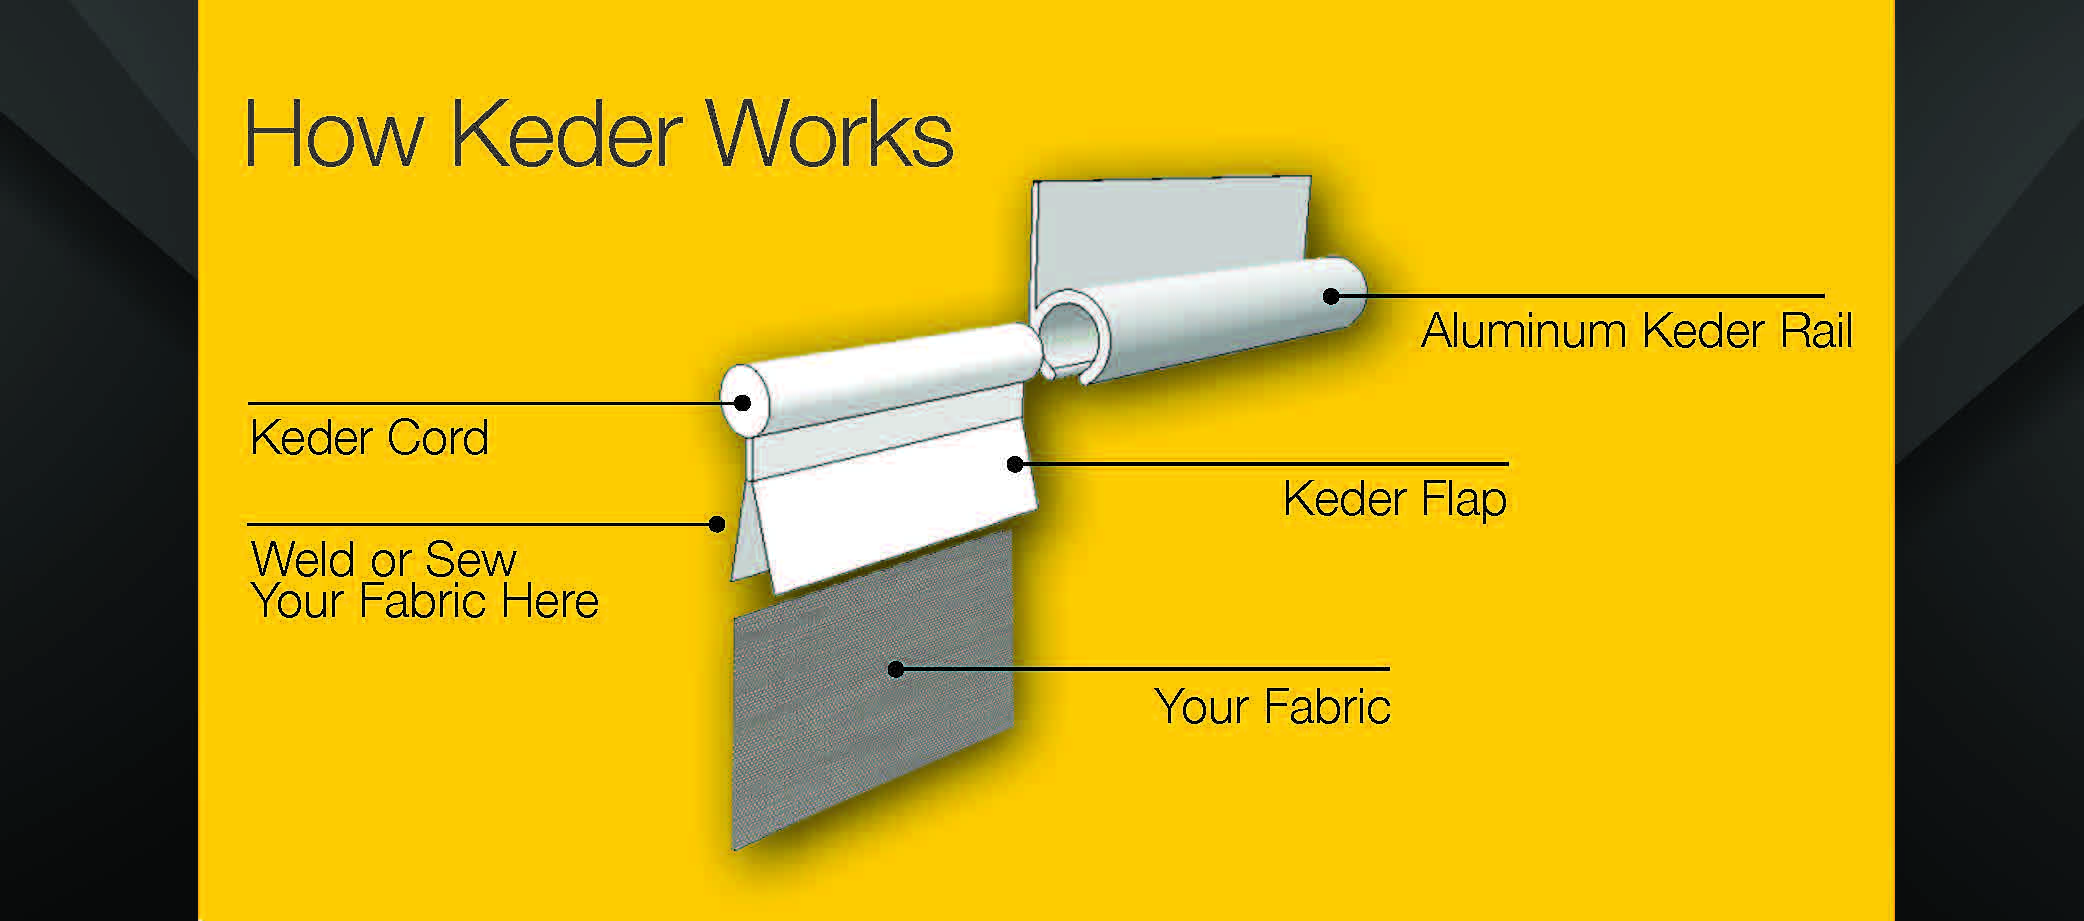 What is Keder and how is it used? | Keder Solutions